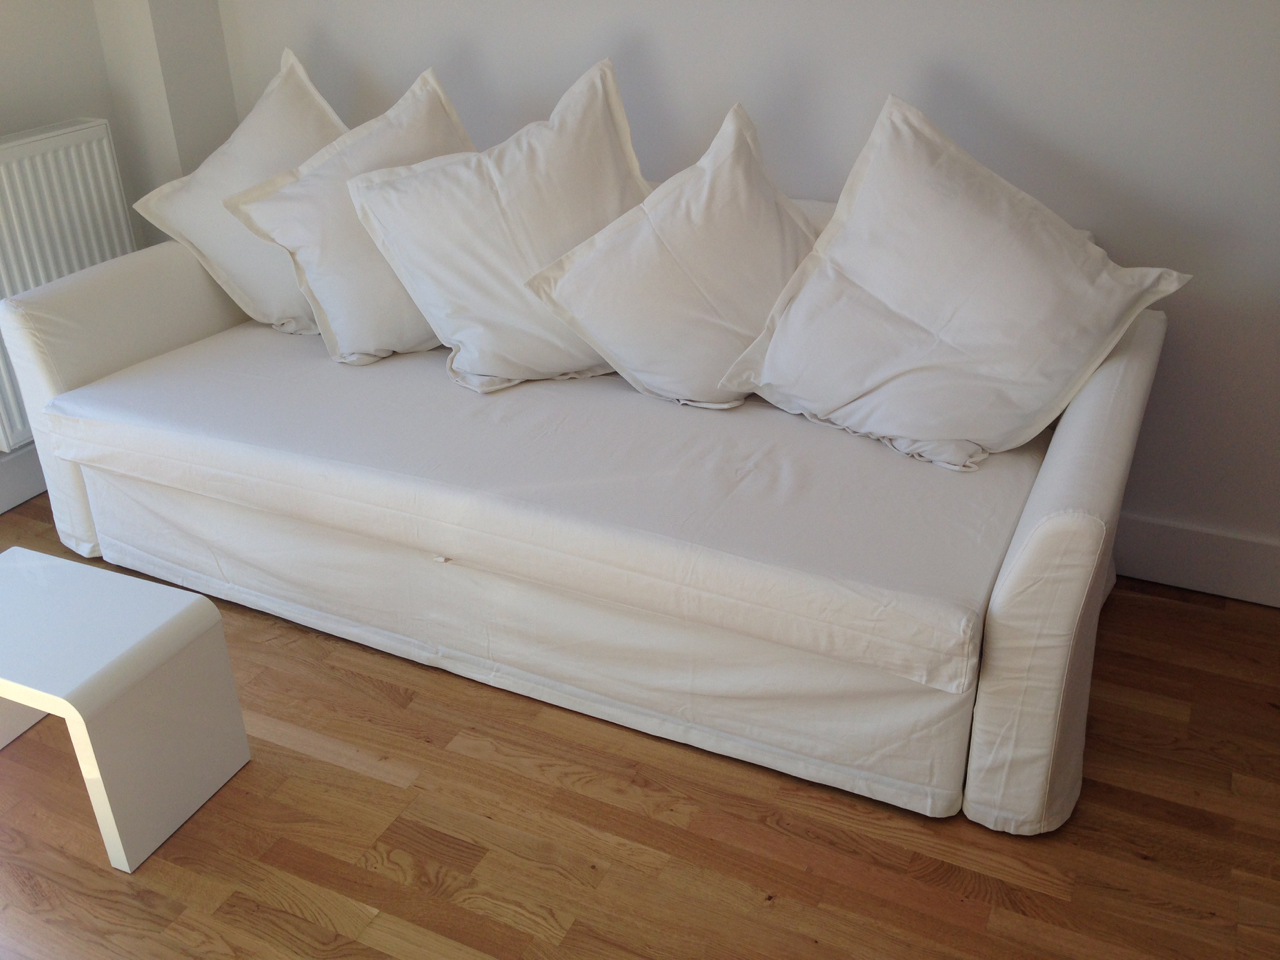 Ikea sofa bed assembled by www.norwichflatpack.co.uk